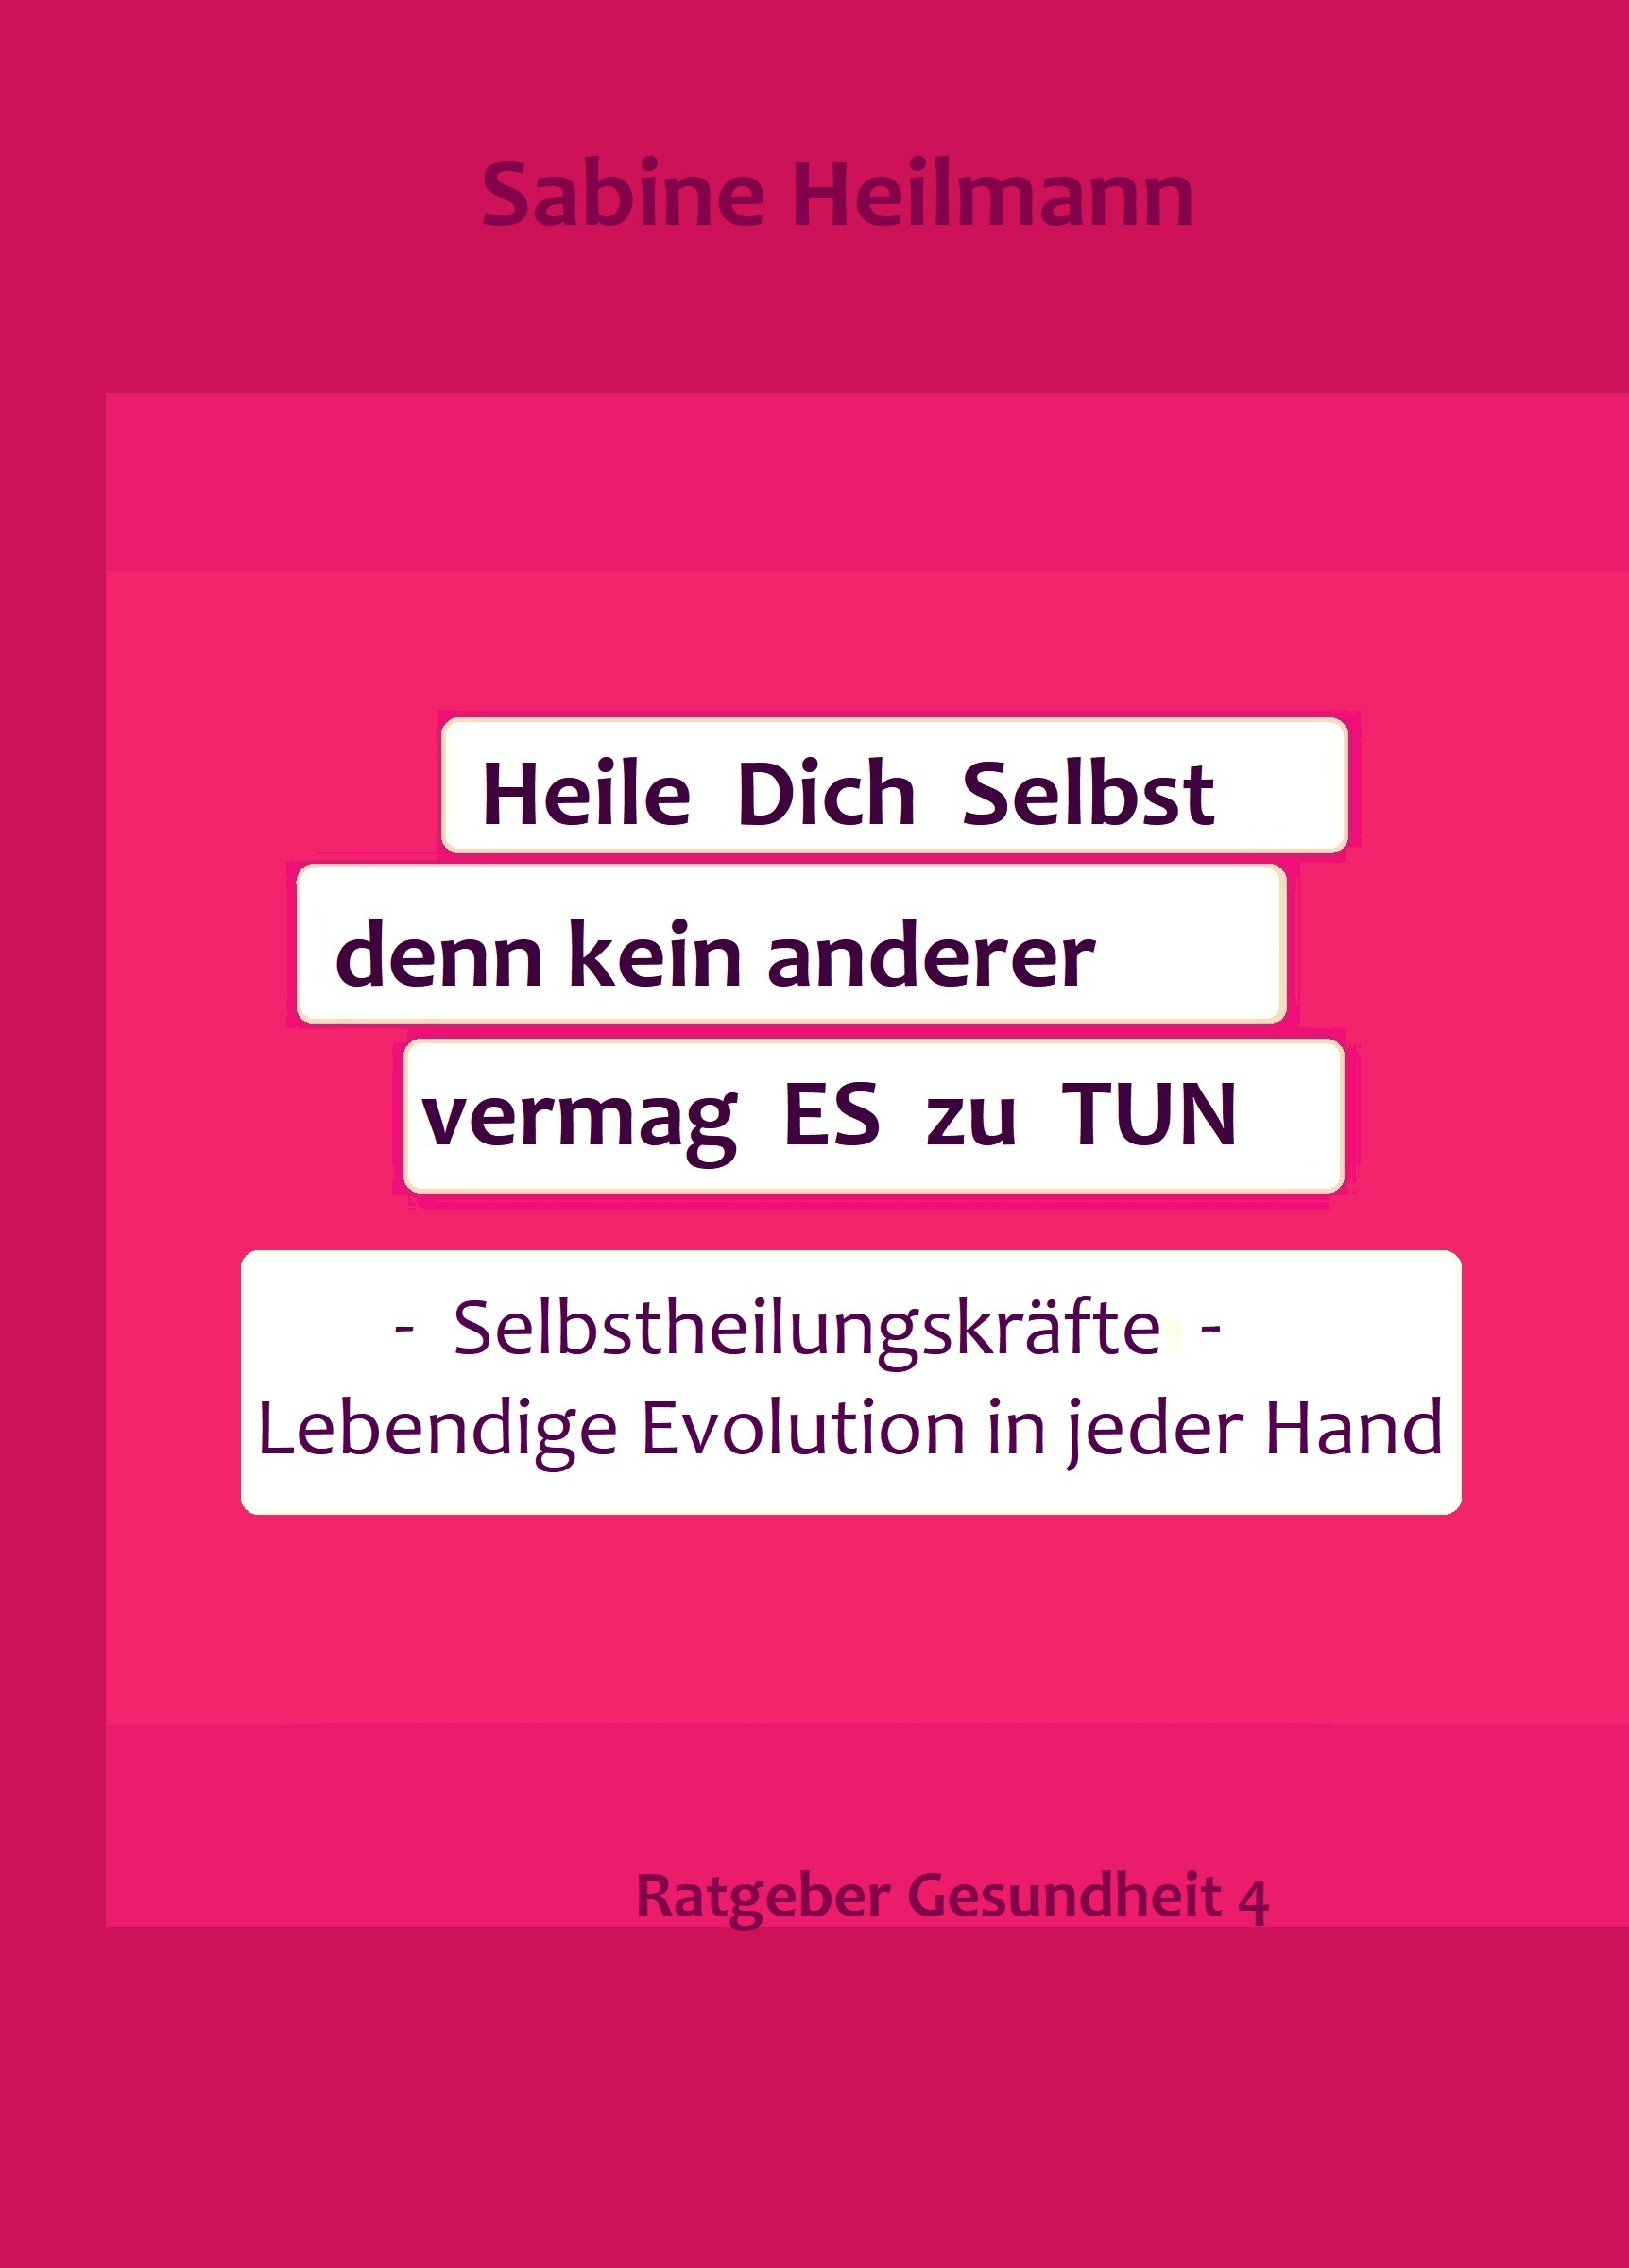 Heile dich selbst 2skal